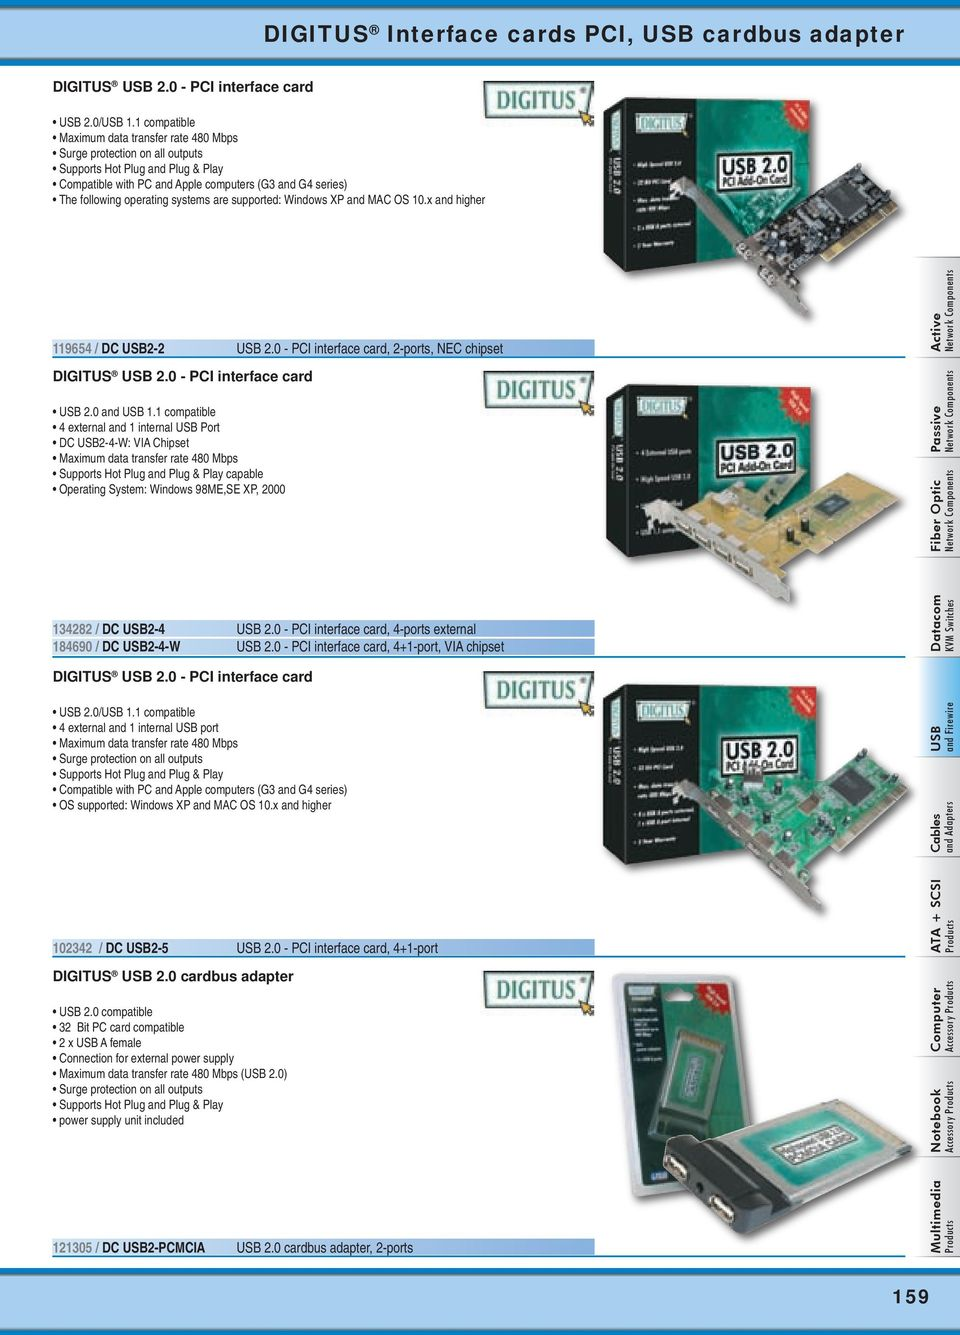 systems are supported: Windows XP and MAC OS 10.x and higher 119654 / DC 2-2 2.0 - PCI interface card, 2-ports, NEC chipset DIGITUS 2.0 - PCI interface card 2.0 and 1.